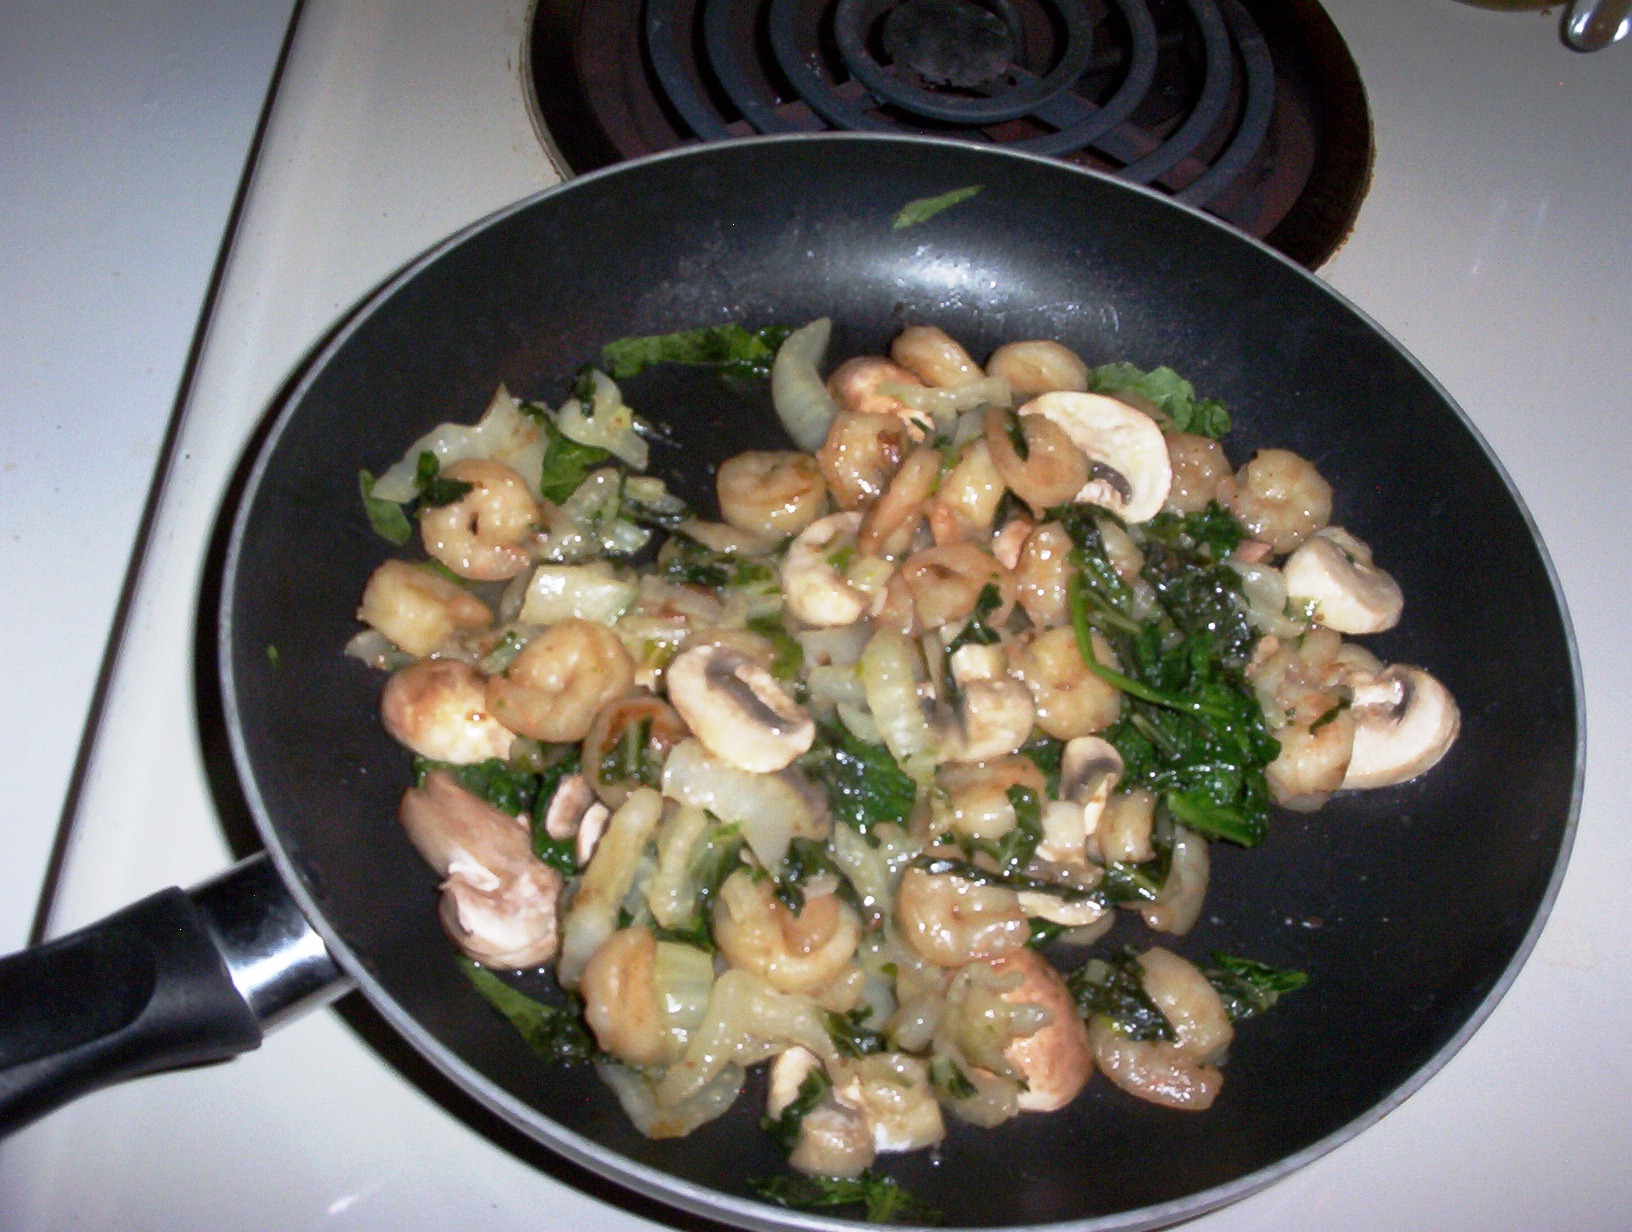 Shrimp Sauteed with Parsley and Garlic, Sugar Snaps, Carrots and Onions on the Side – Gluten-free